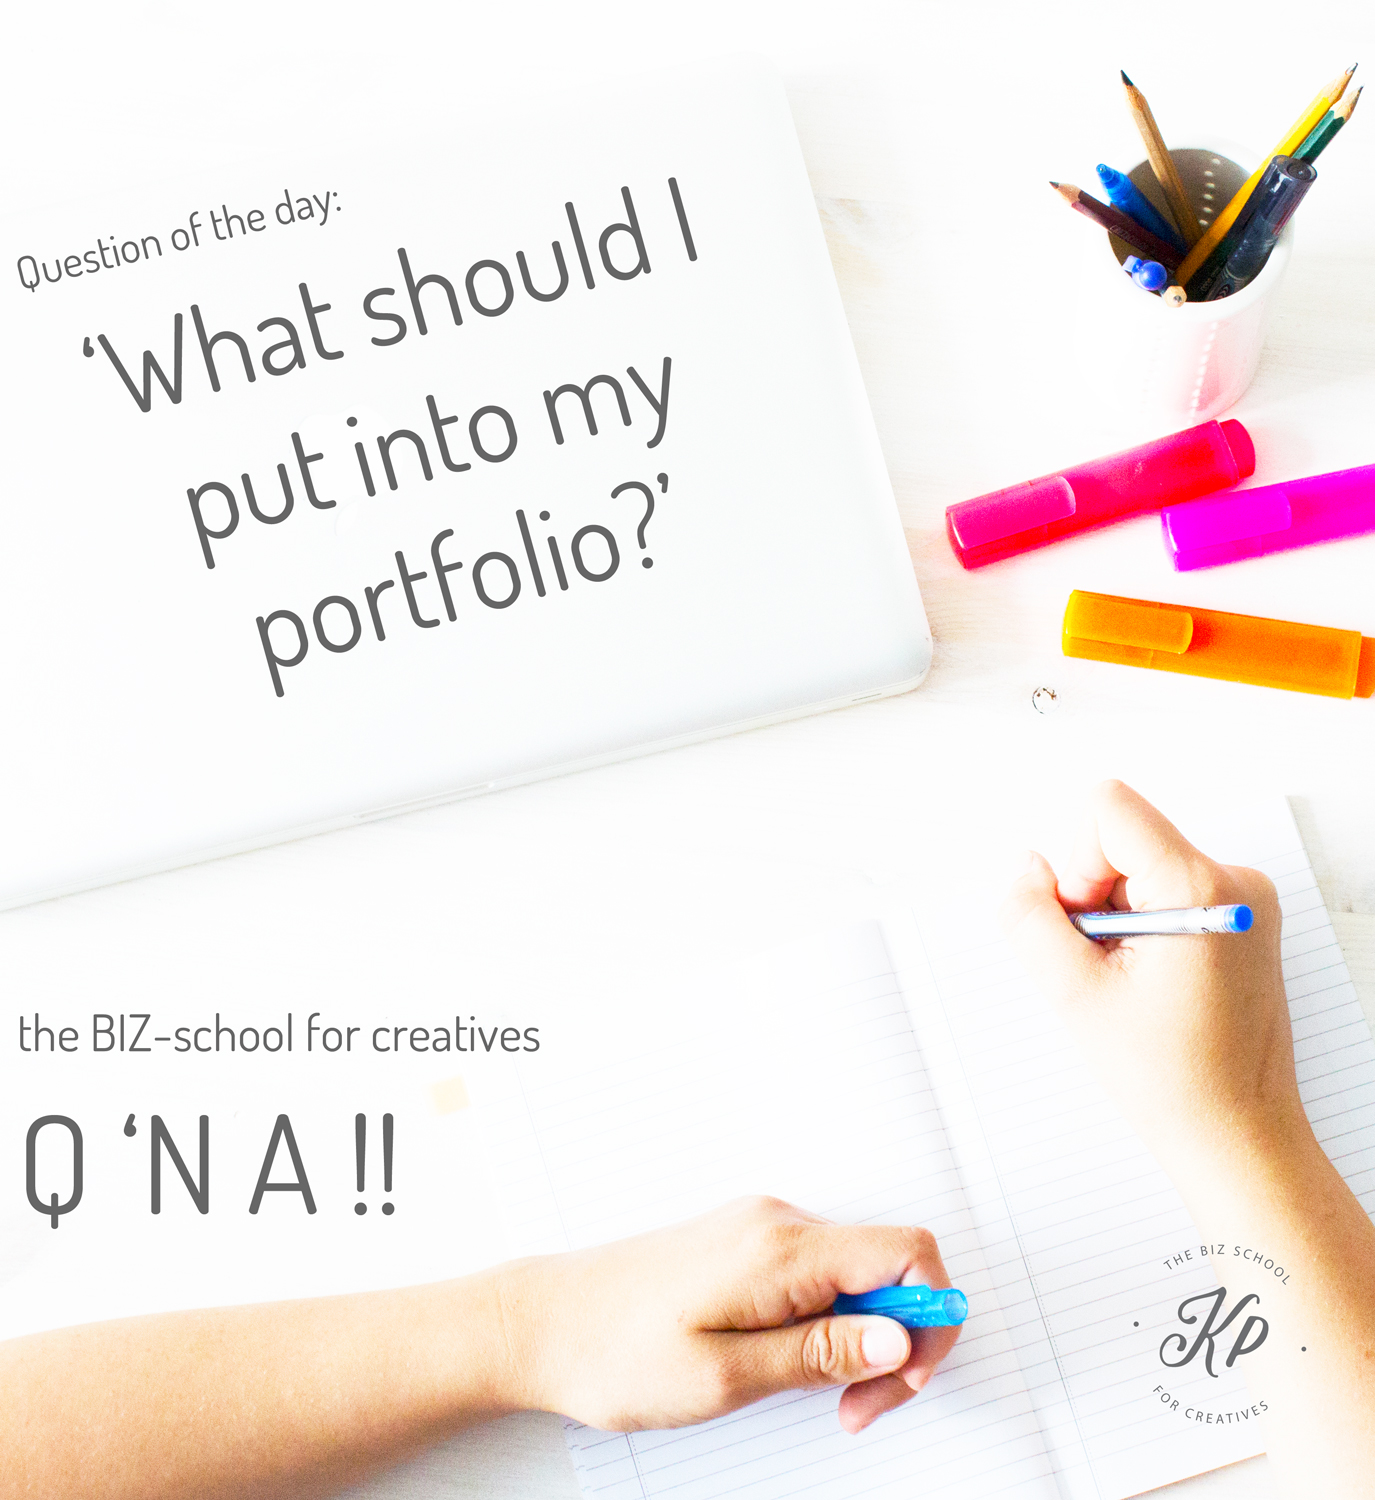 the BIZ-school for creatives Q 'N A, Question of the day: 'What should I put into my portfolio?' Read the full answer at www.kerstinpressler.com